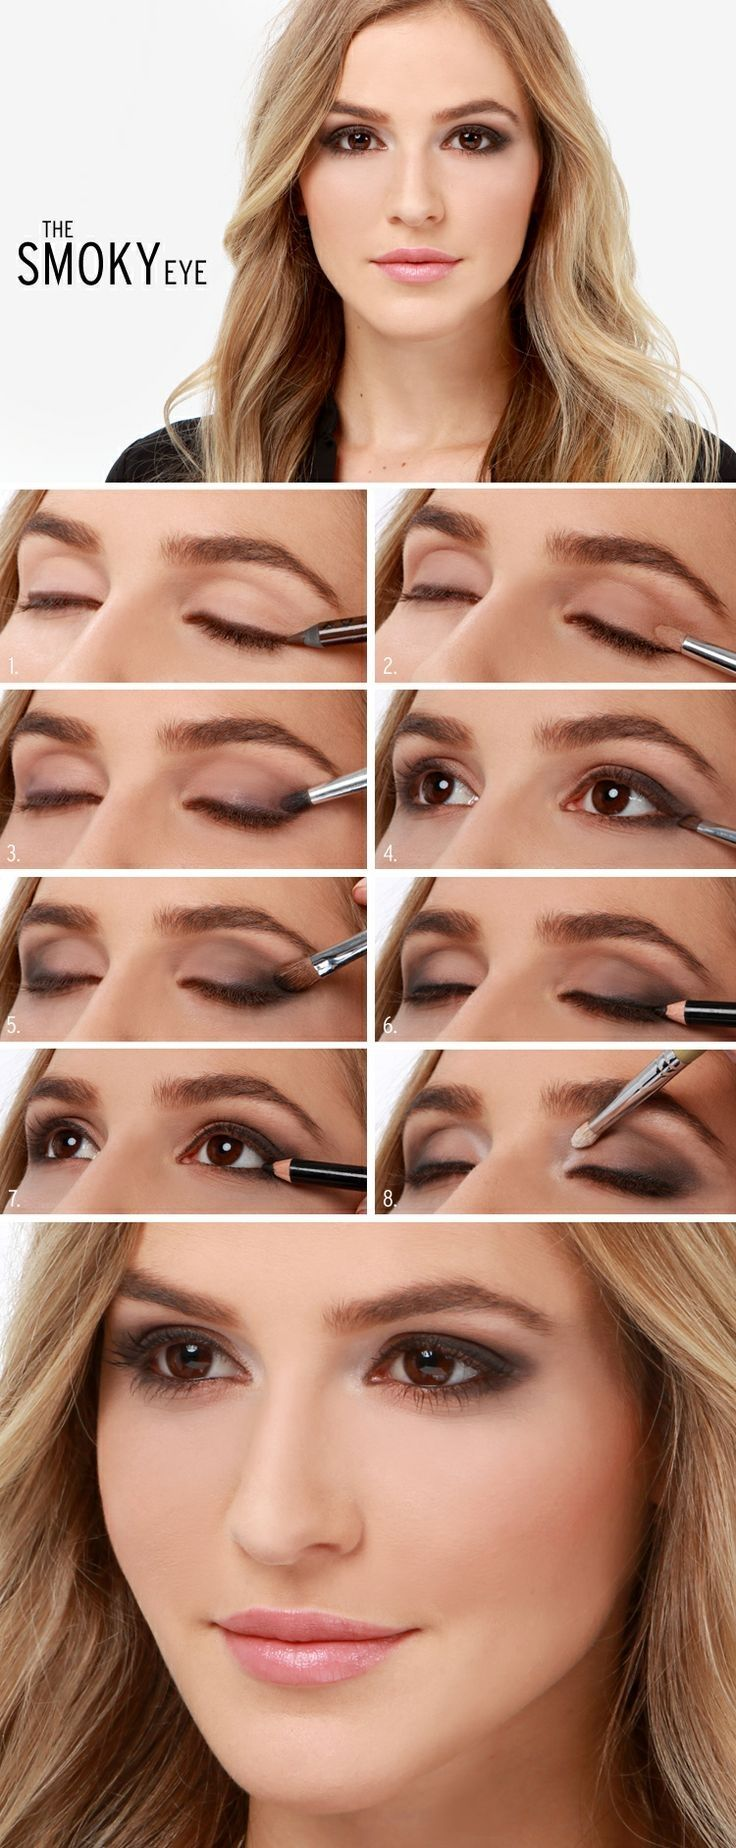 smokey eye tutorial http://www.topinspired.com/top-10-tutorials-for-irresistible-smoky-eyes/